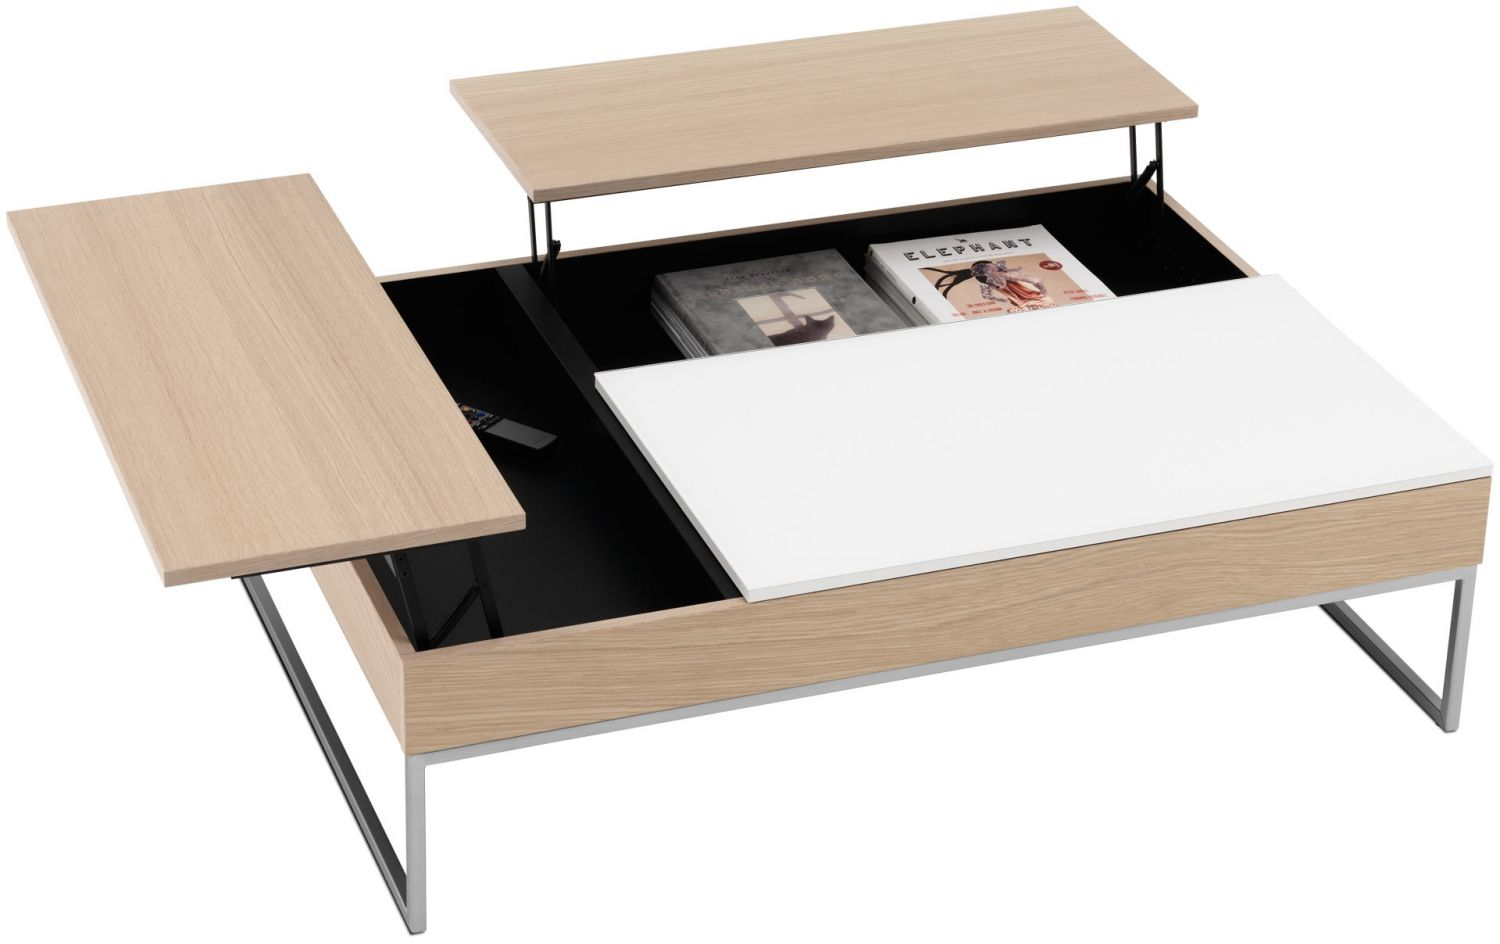 Chiva Konferencni Stolek Dubova Dyha A Bile Sklo 2 Coffee Table Contemporary Coffee Table Modern Coffee Tables [ 944 x 1500 Pixel ]